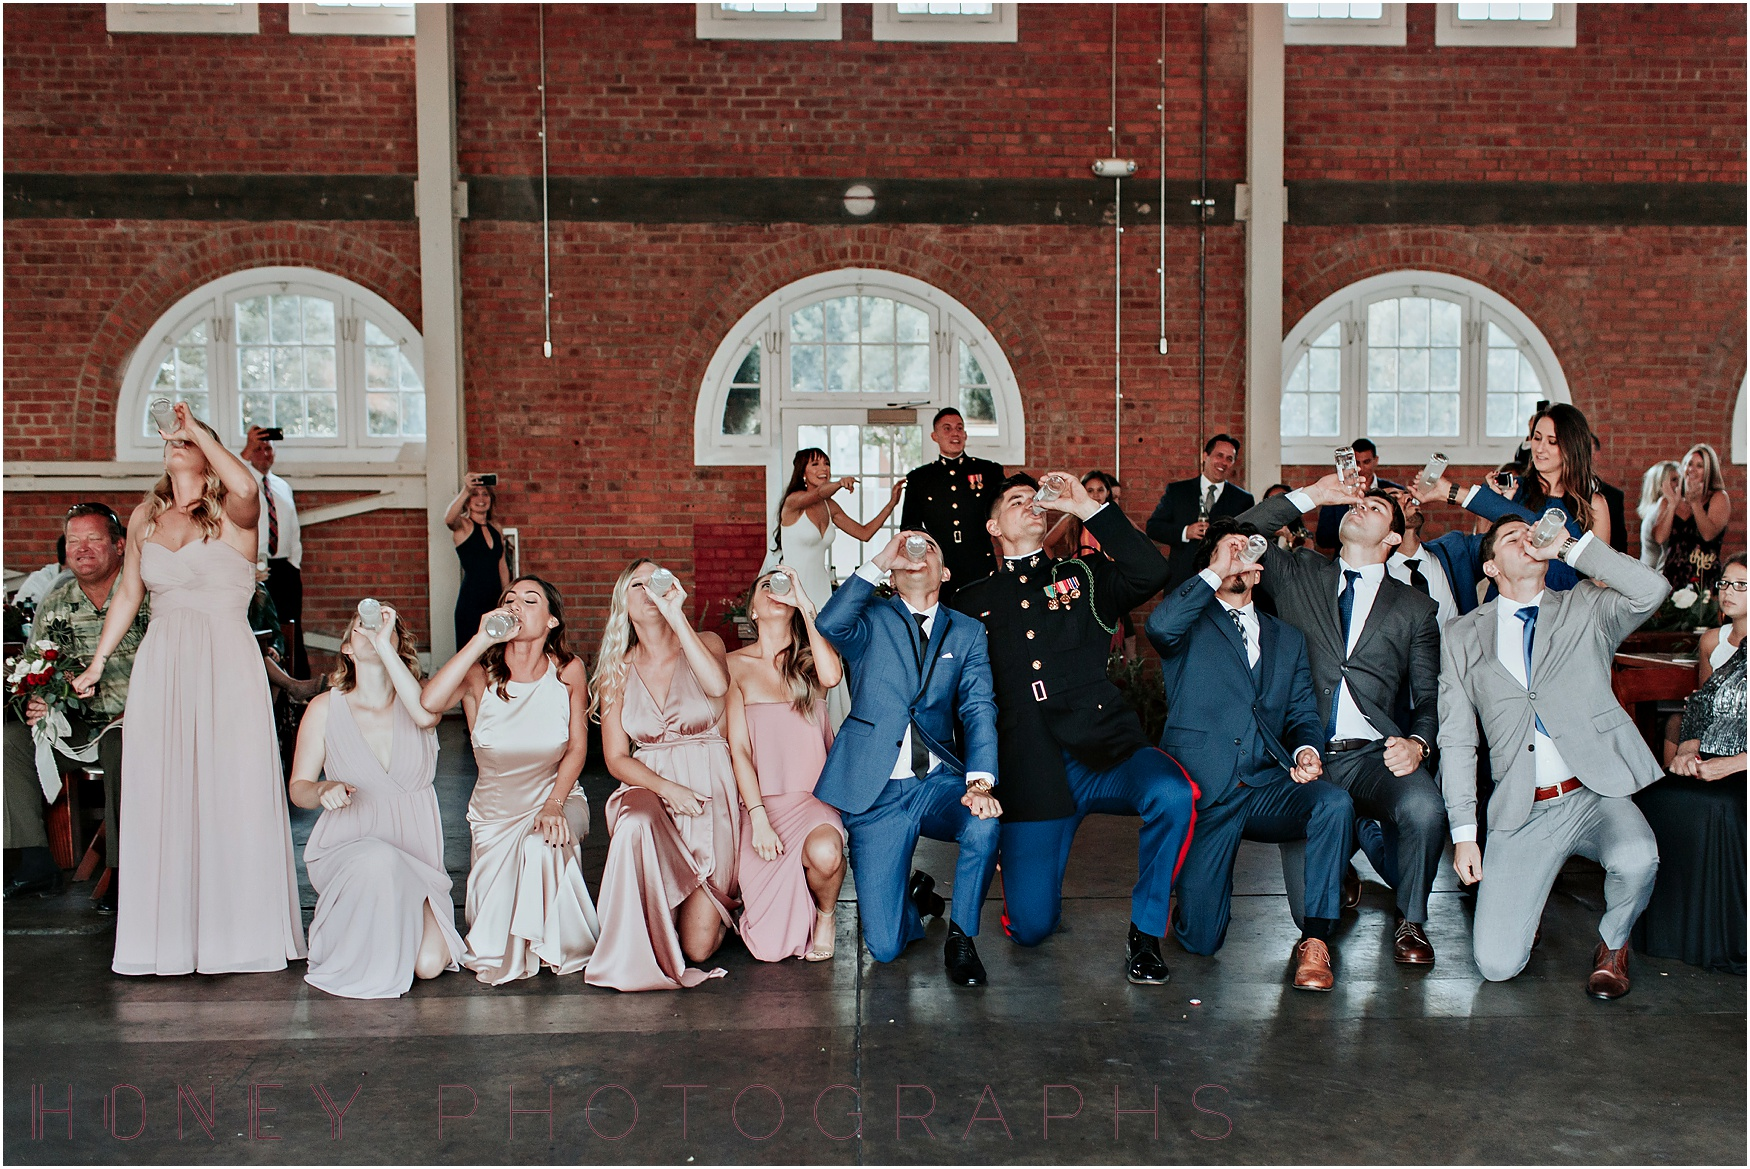 bricksandiegomilitaryurbanwedding0050.JPG